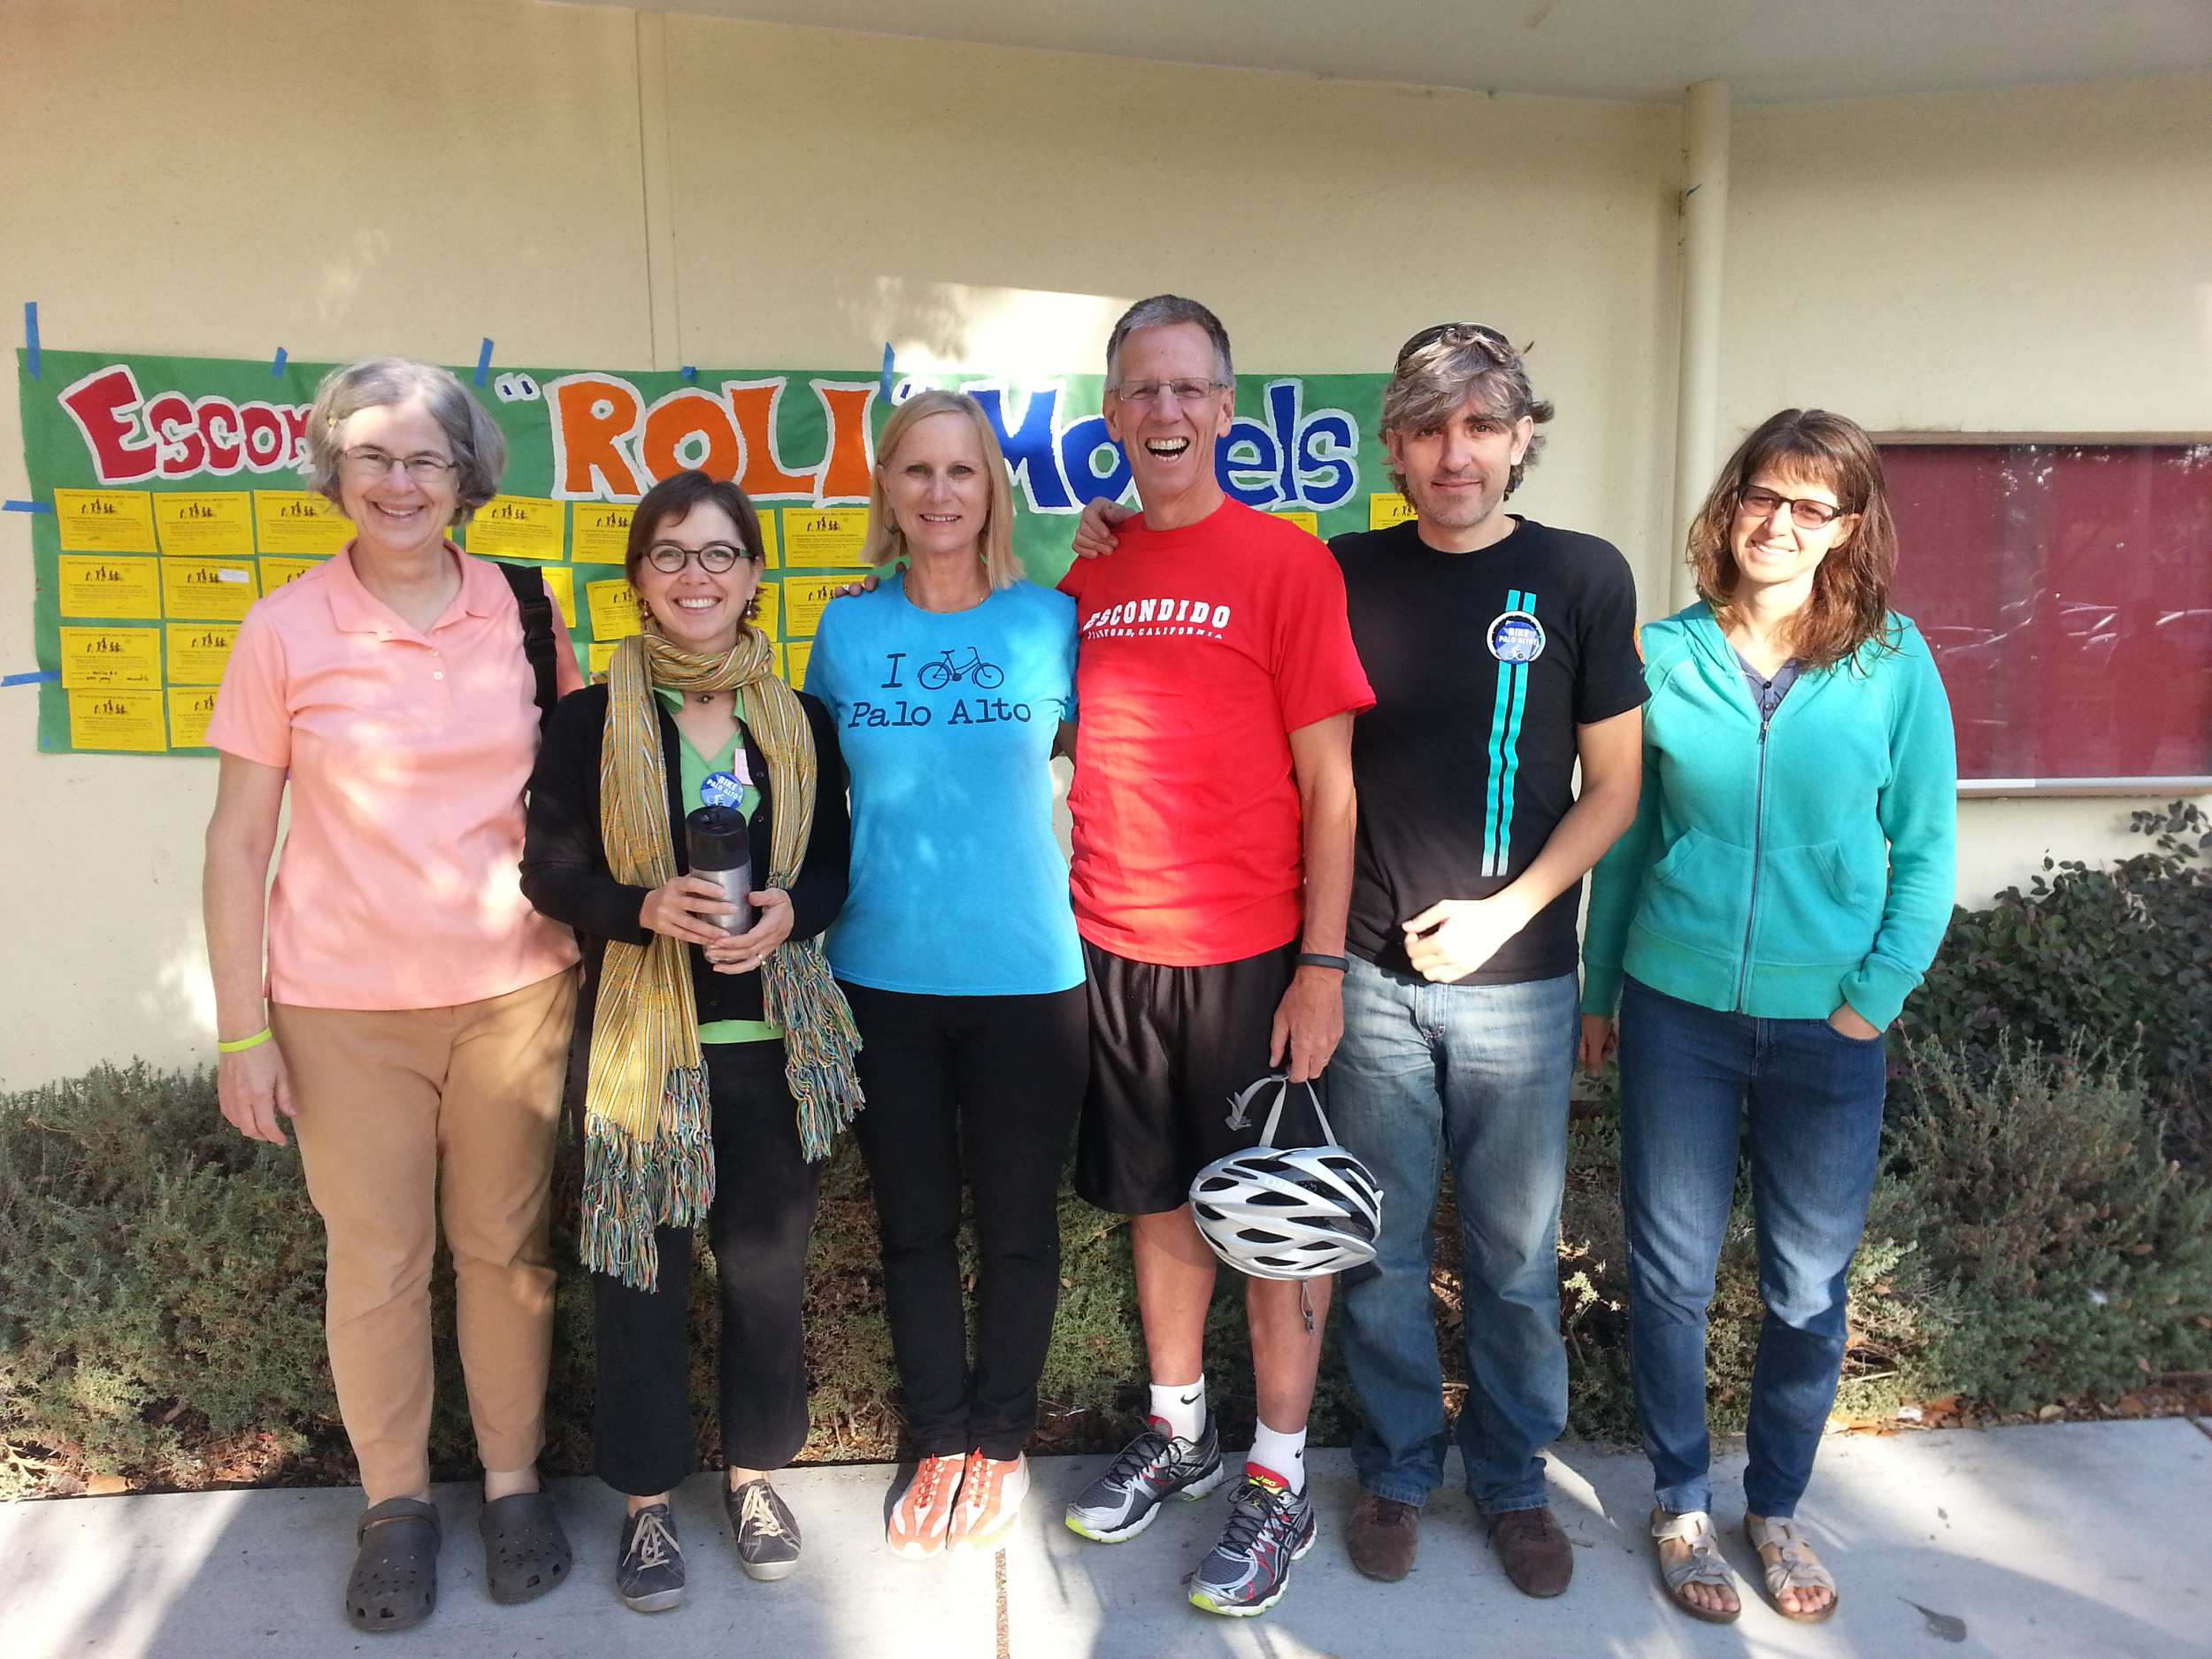 Our awesome Walk & Roll team in front of the Wall of Fame: Palo Alto Safe Routes to Schools coordinator Kathy Durham, Vanessa Warheit, Palo Alto Mayor Nancy Shepherd, PAUSD Superintendent Max McGee, Ender Martinez, and Amy Butte